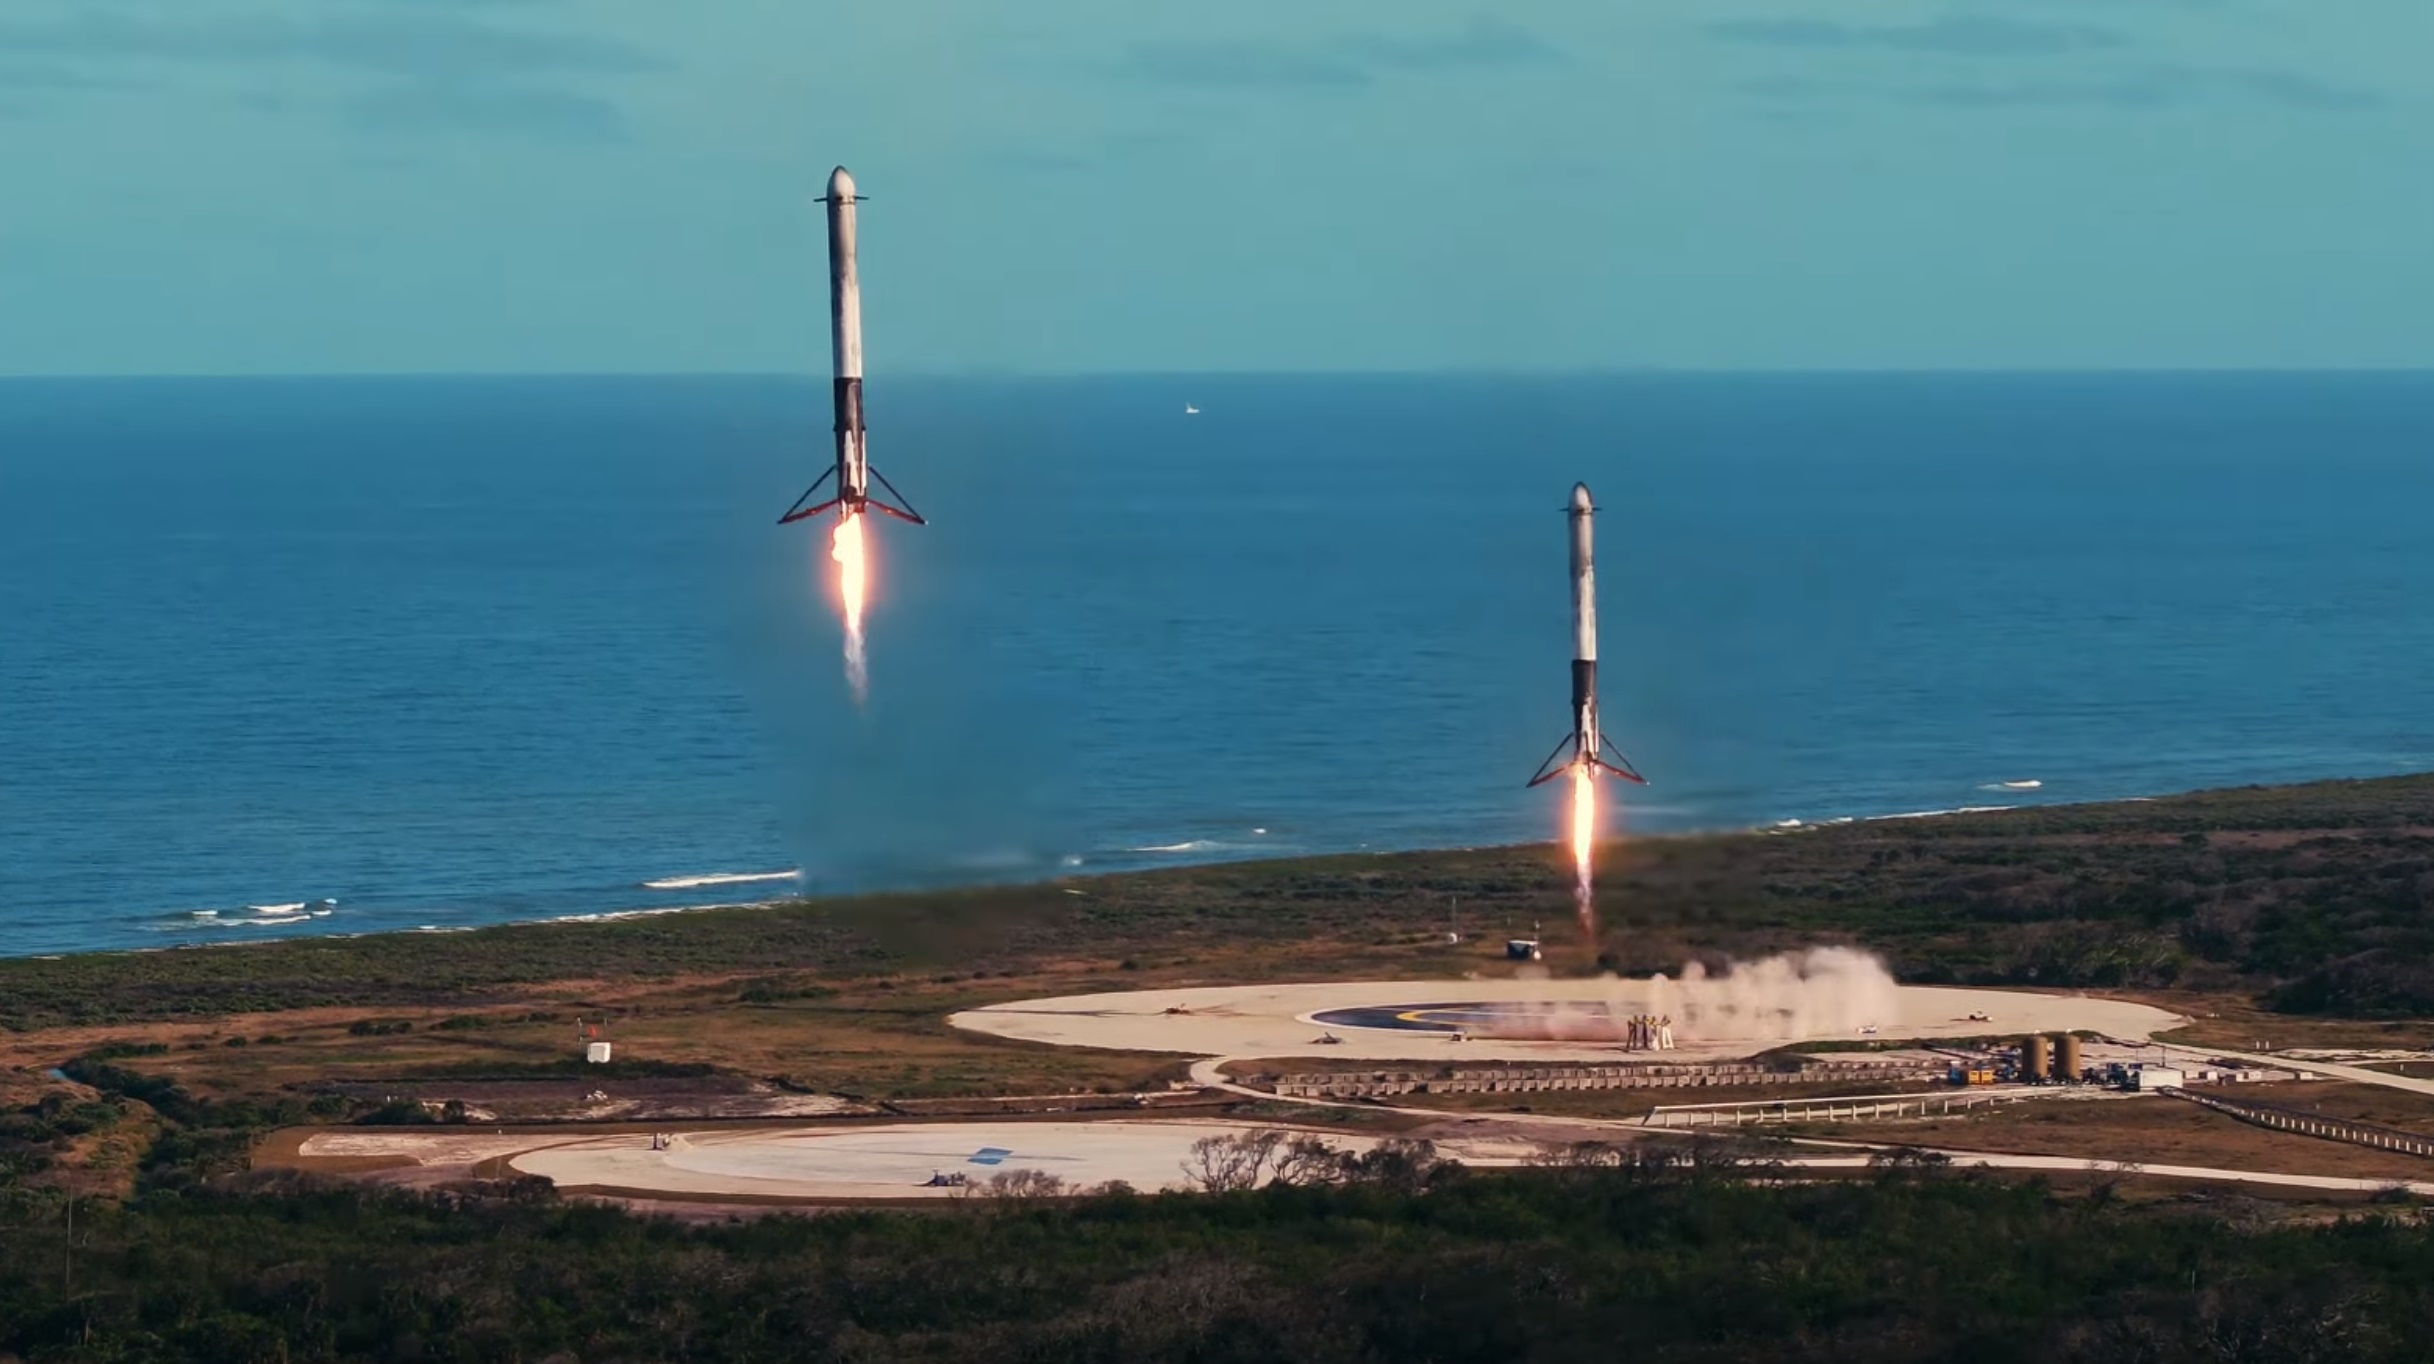 Falcon Heavy side booster landings (SpaceX)